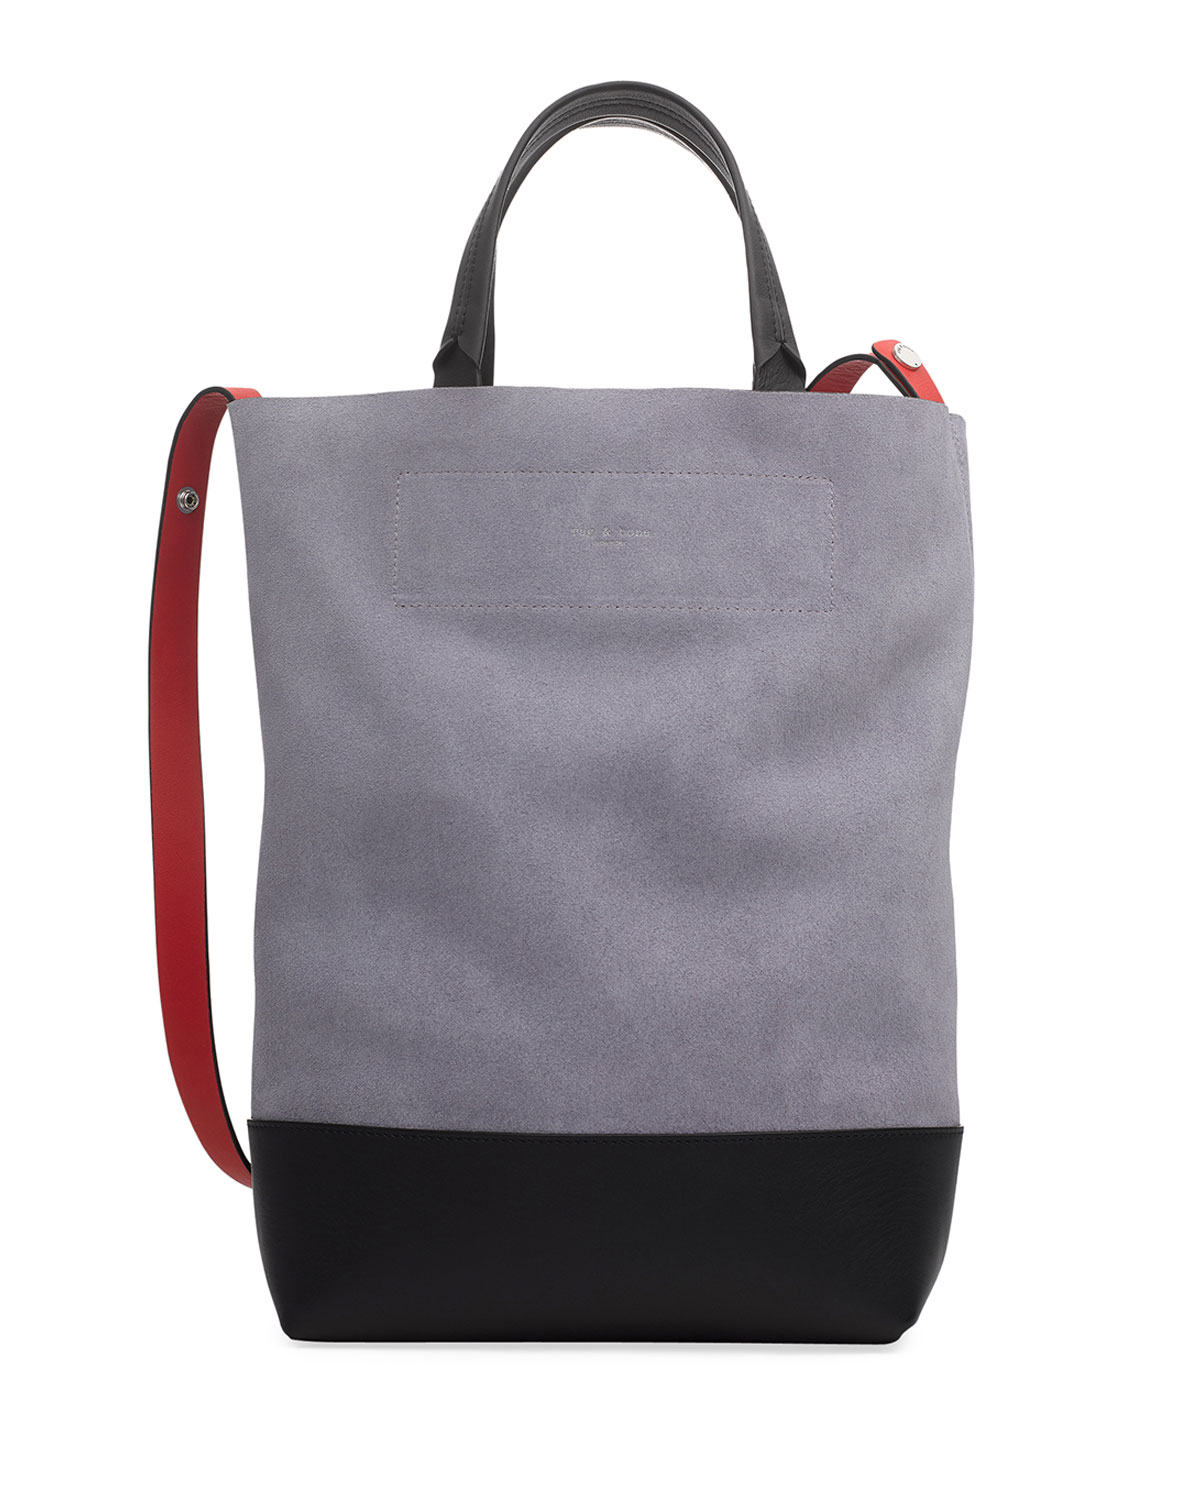 Walker Convertible Tall Suede/Leather Tote Bag